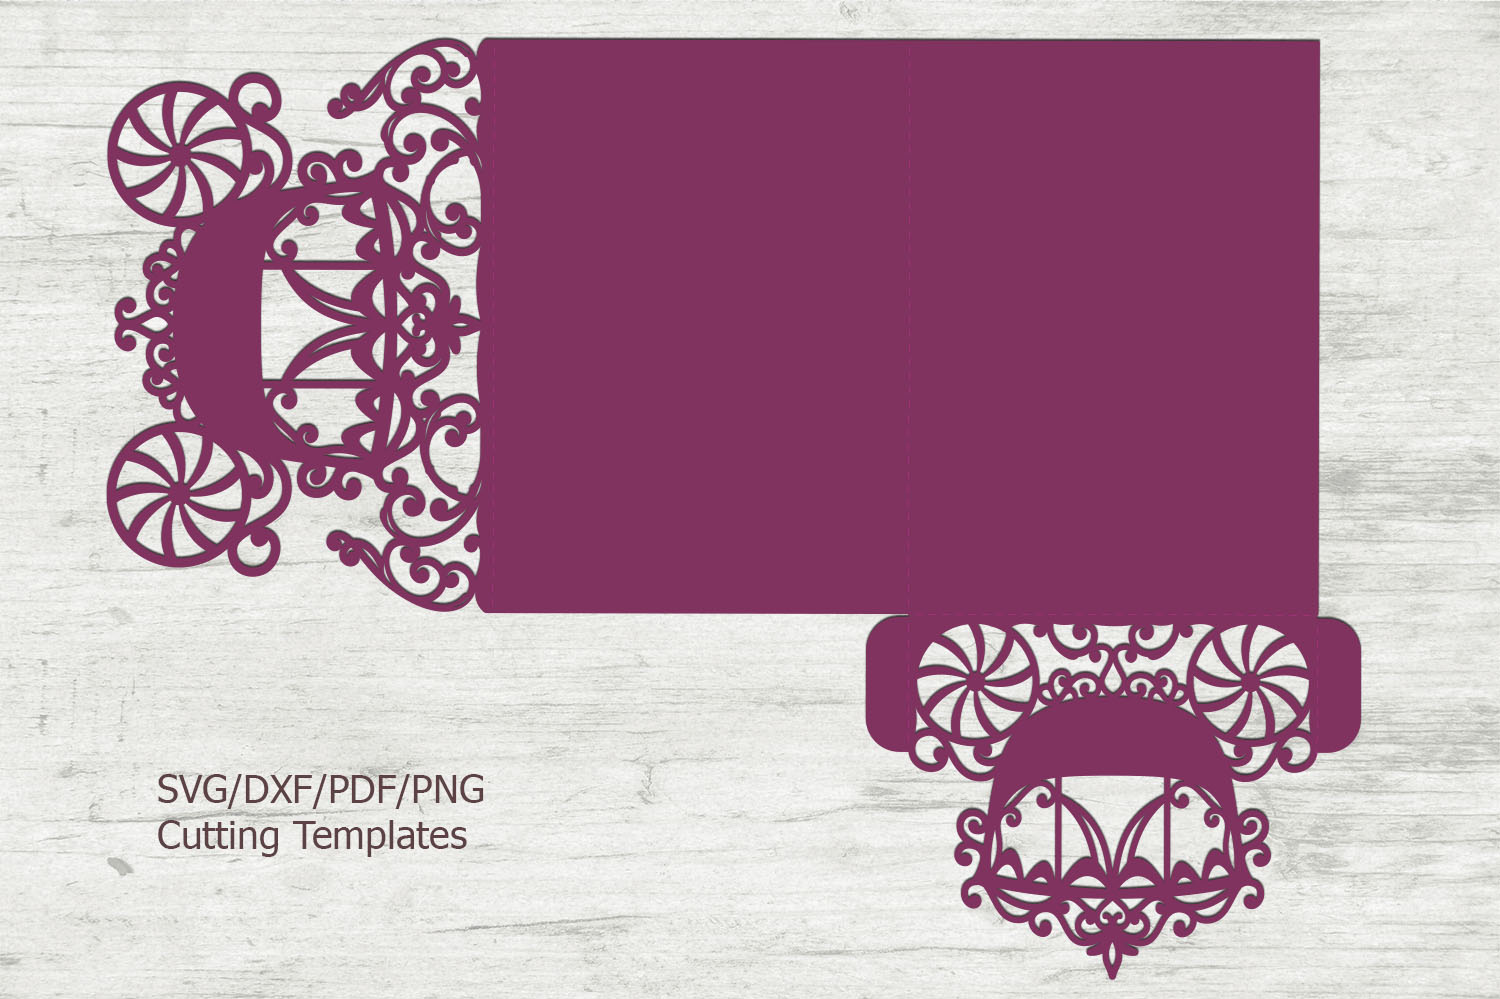 Princess Carriage Wedding Invitation Trifold Quinceanera svg example image 4